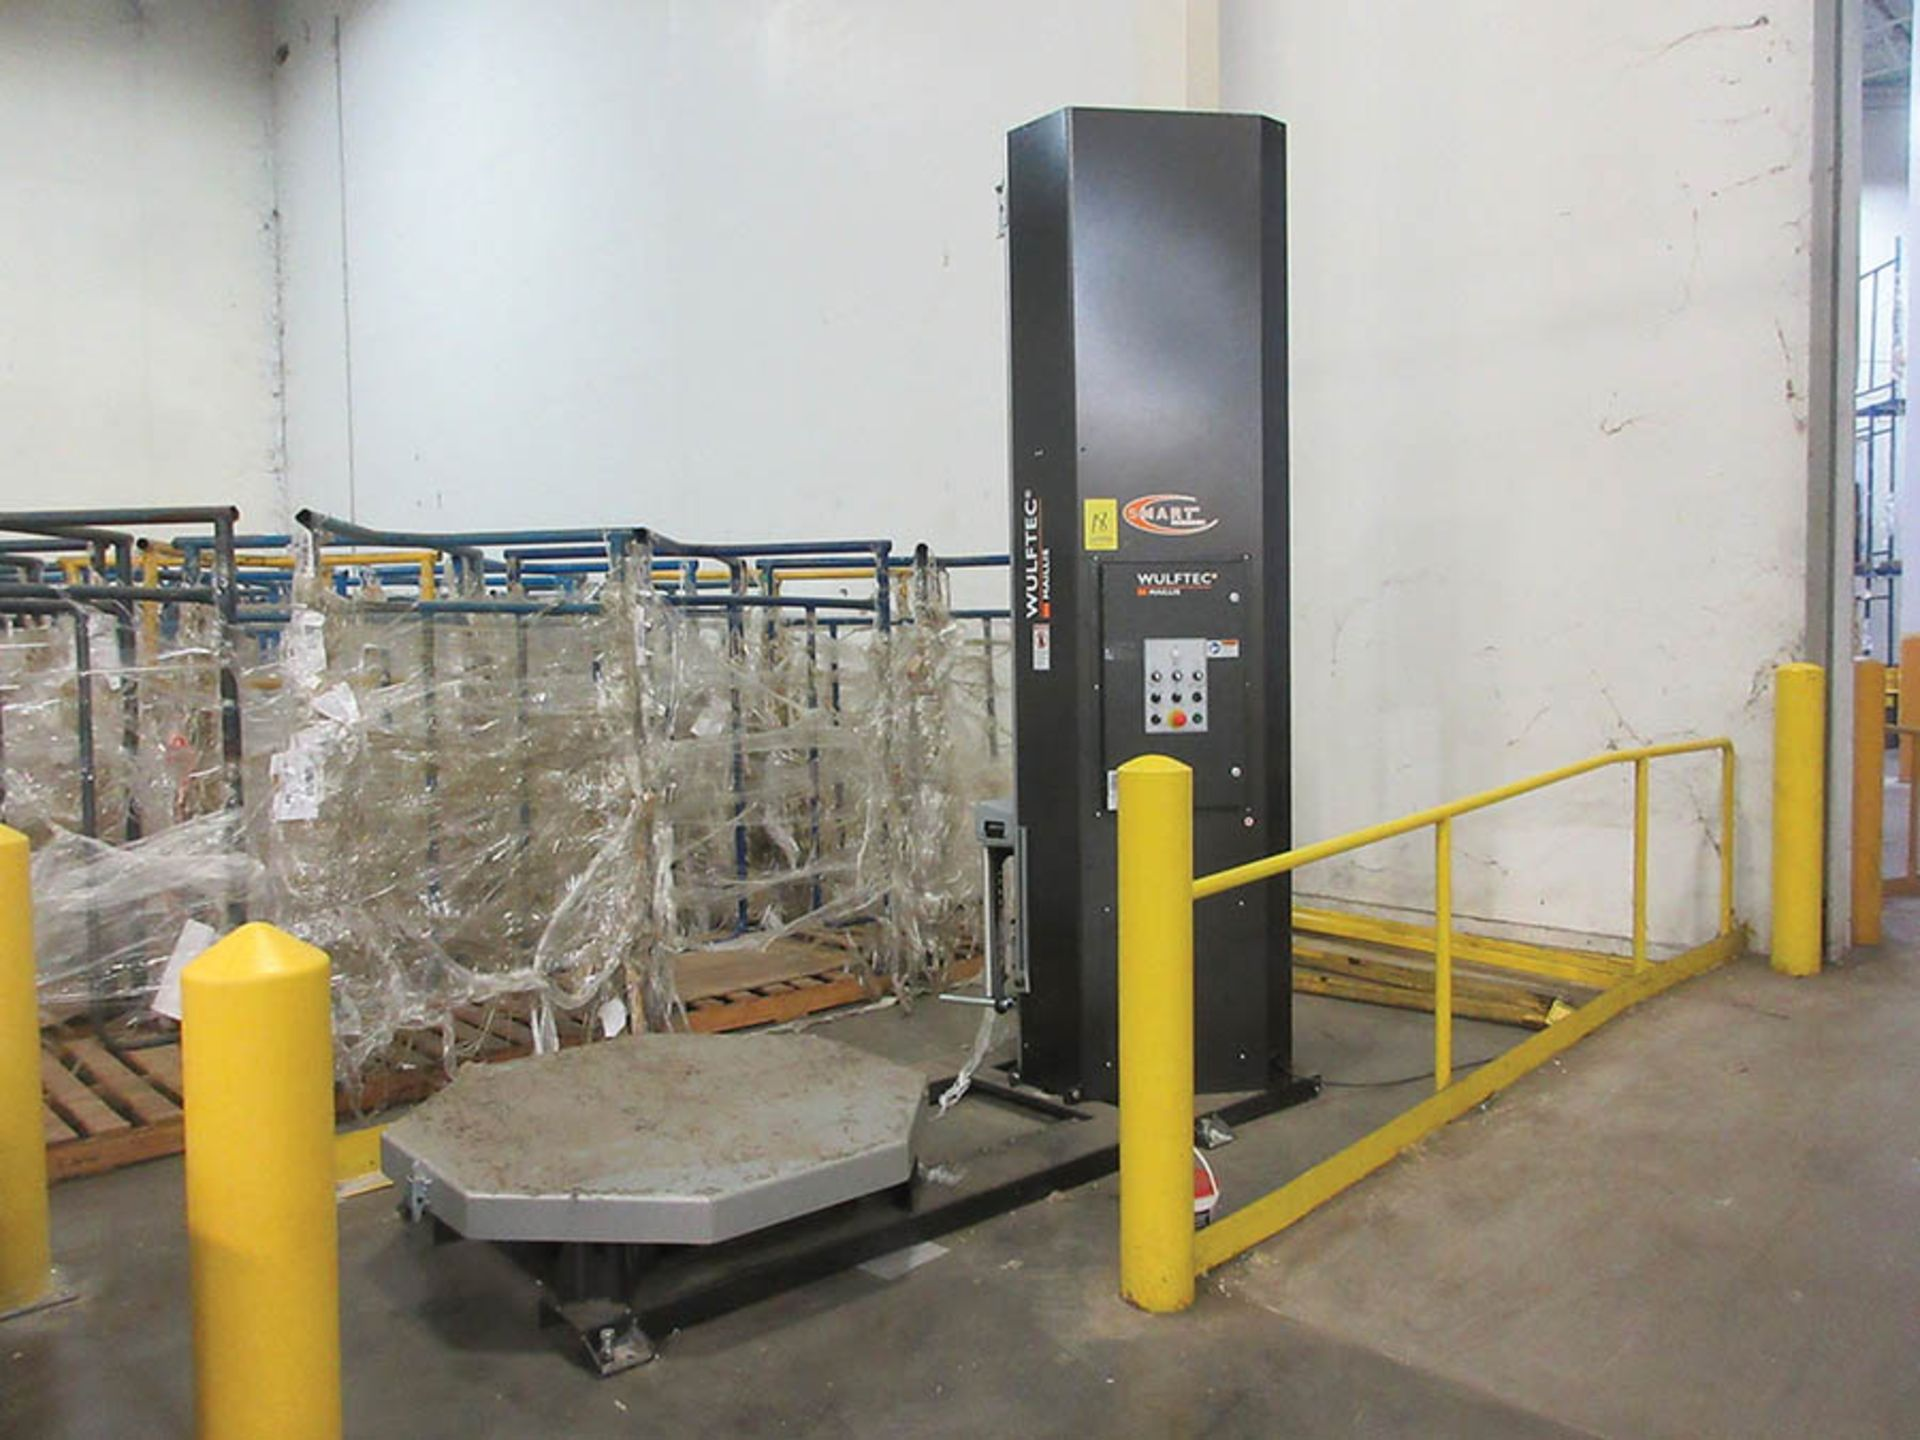 Lot 18 - WULFTEC MAILLIS STRETCH WRAPPER, SMART SERIES, MODEL: WSMH-150-B, 120/60/1, 51'' TABLE, S/N 156121-